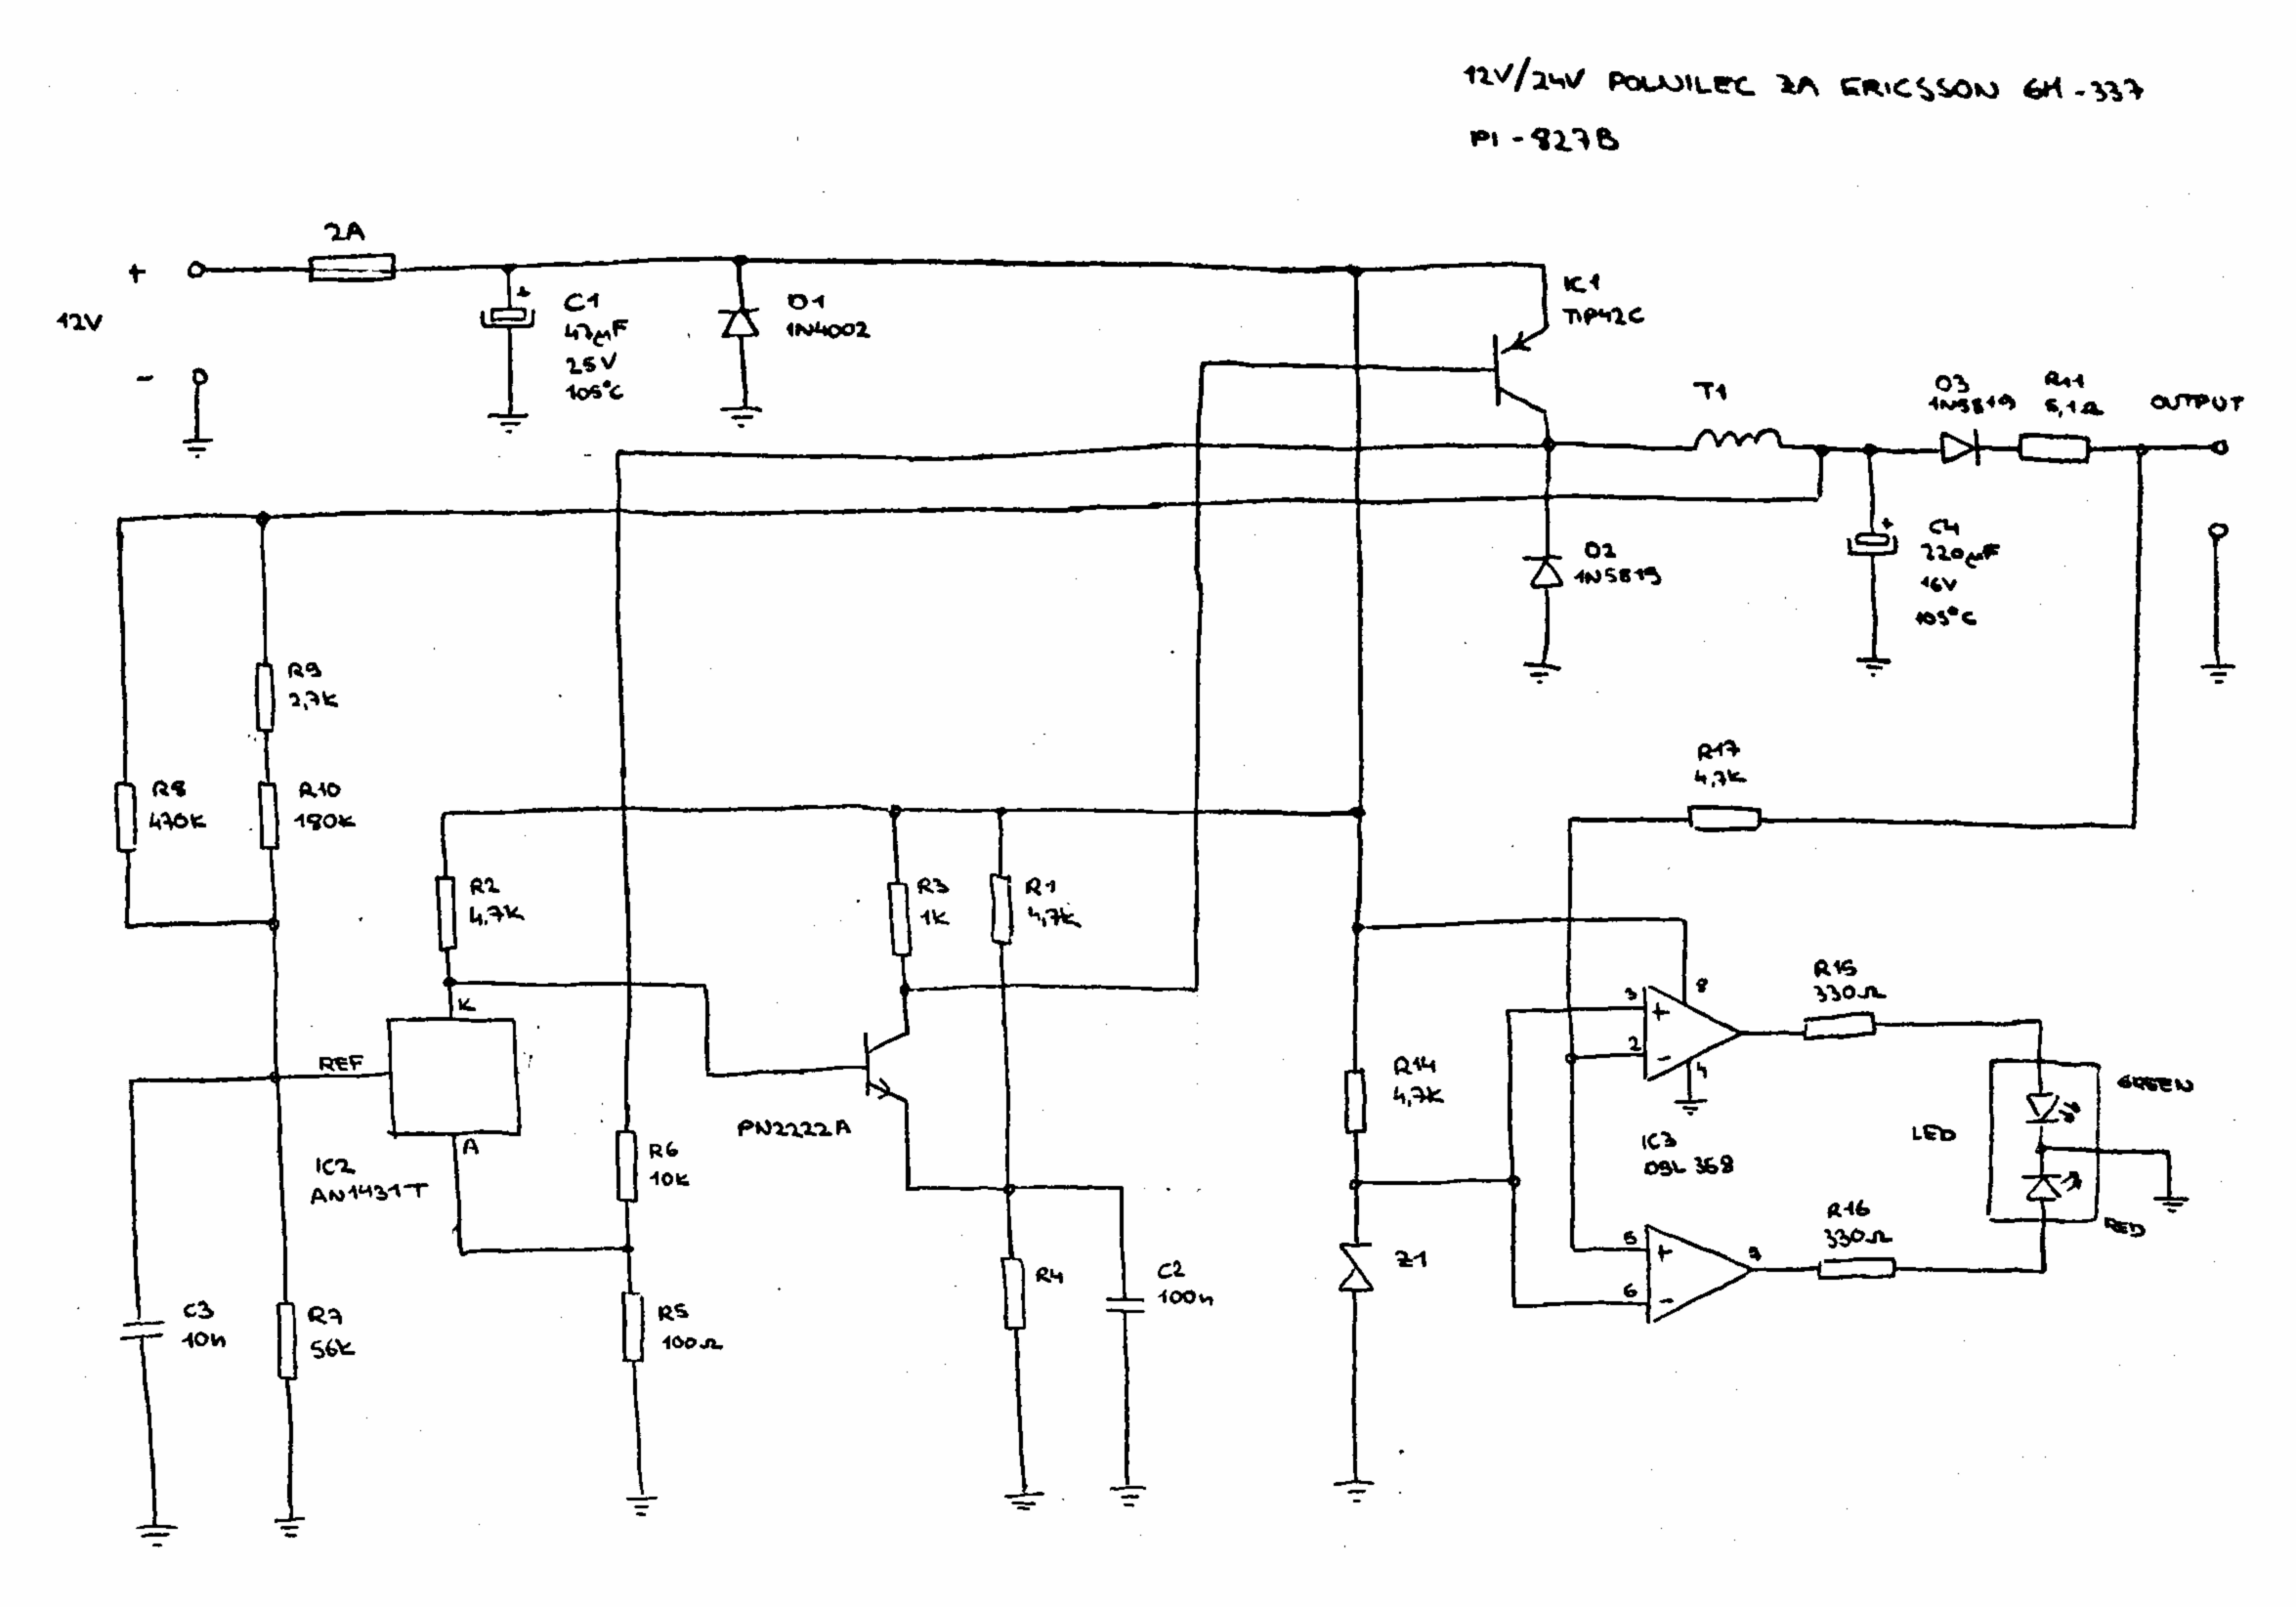 Avians Blog Archive For The Analog Category Page 7 7805 5v 1a Regulated Power Supply With Overvoltage Protection Circuit It Really Has A Bare Minimum Of Components If You Take Out Dual Op Amp Which Is There Only Enhancing User Experience Changes Color